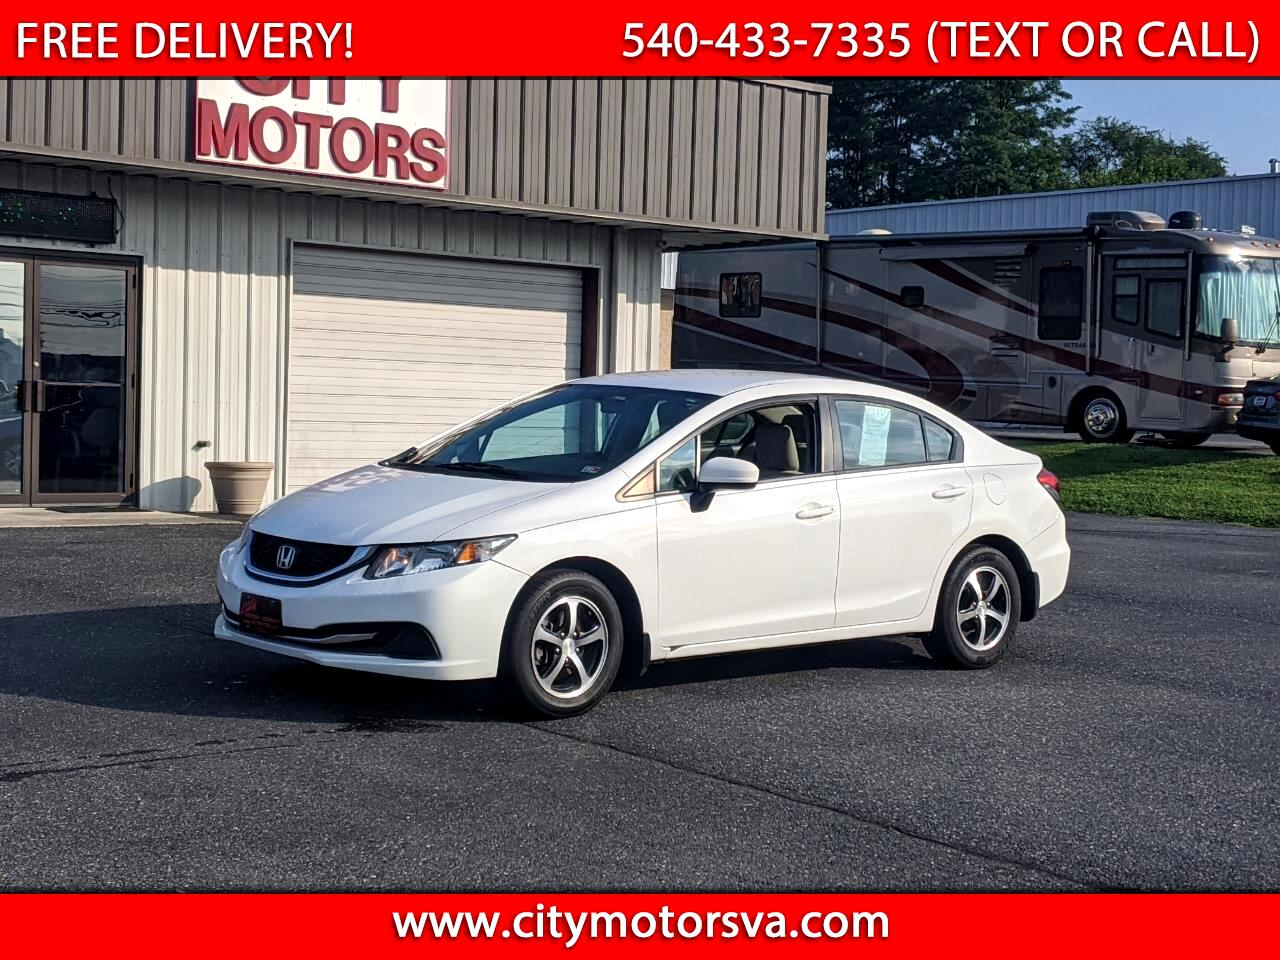 Honda Civic Sedan 4dr CVT SE 2015